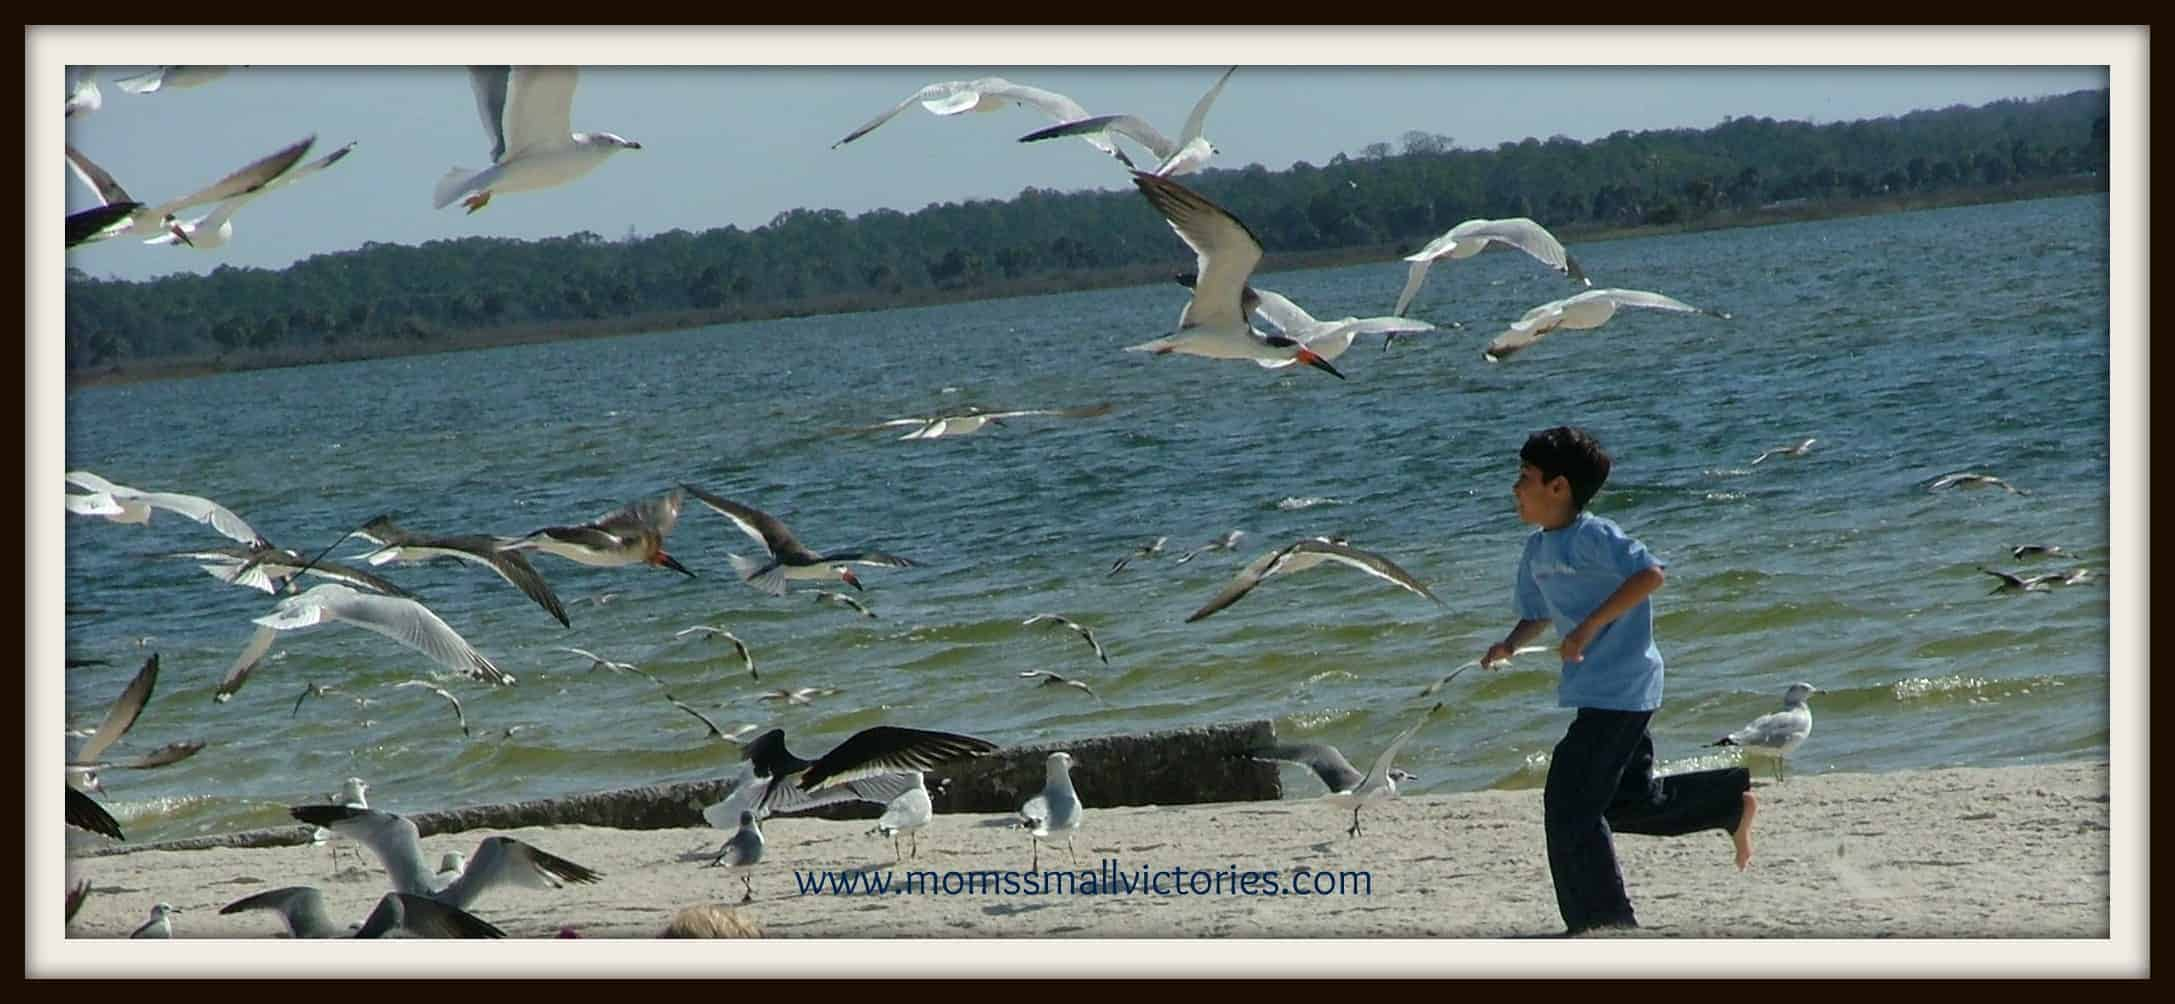 Wordless Wednesday – Chasing Seagulls